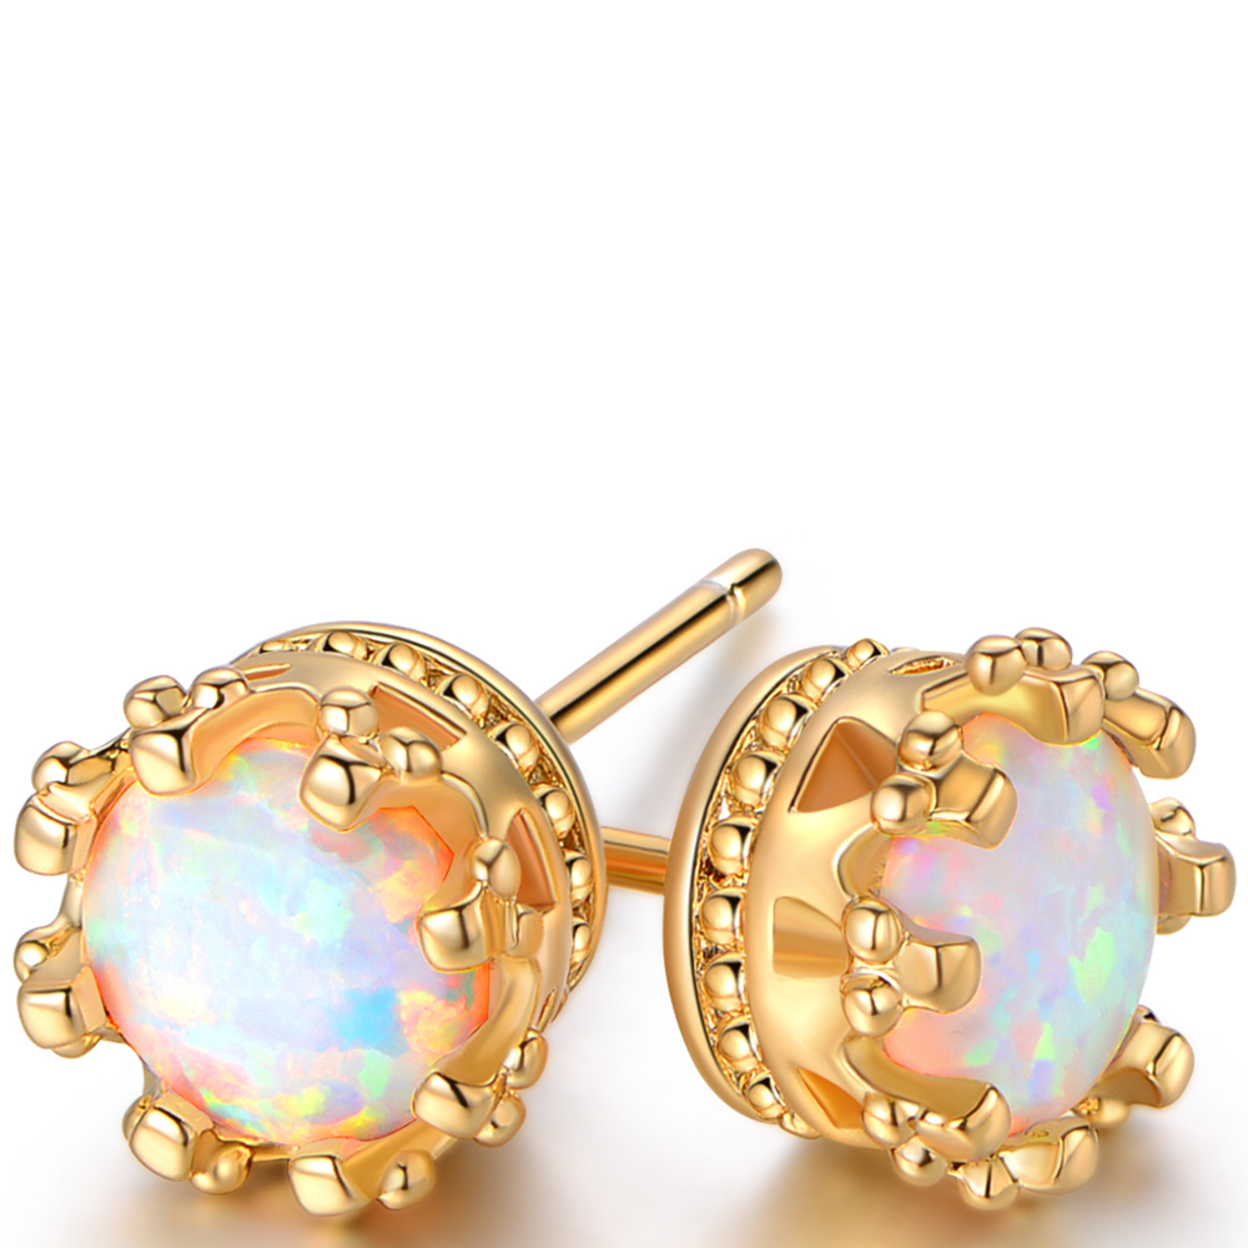 18k Gold Plated 7mm Opal Crown Stud Earrings Er5077-g-19